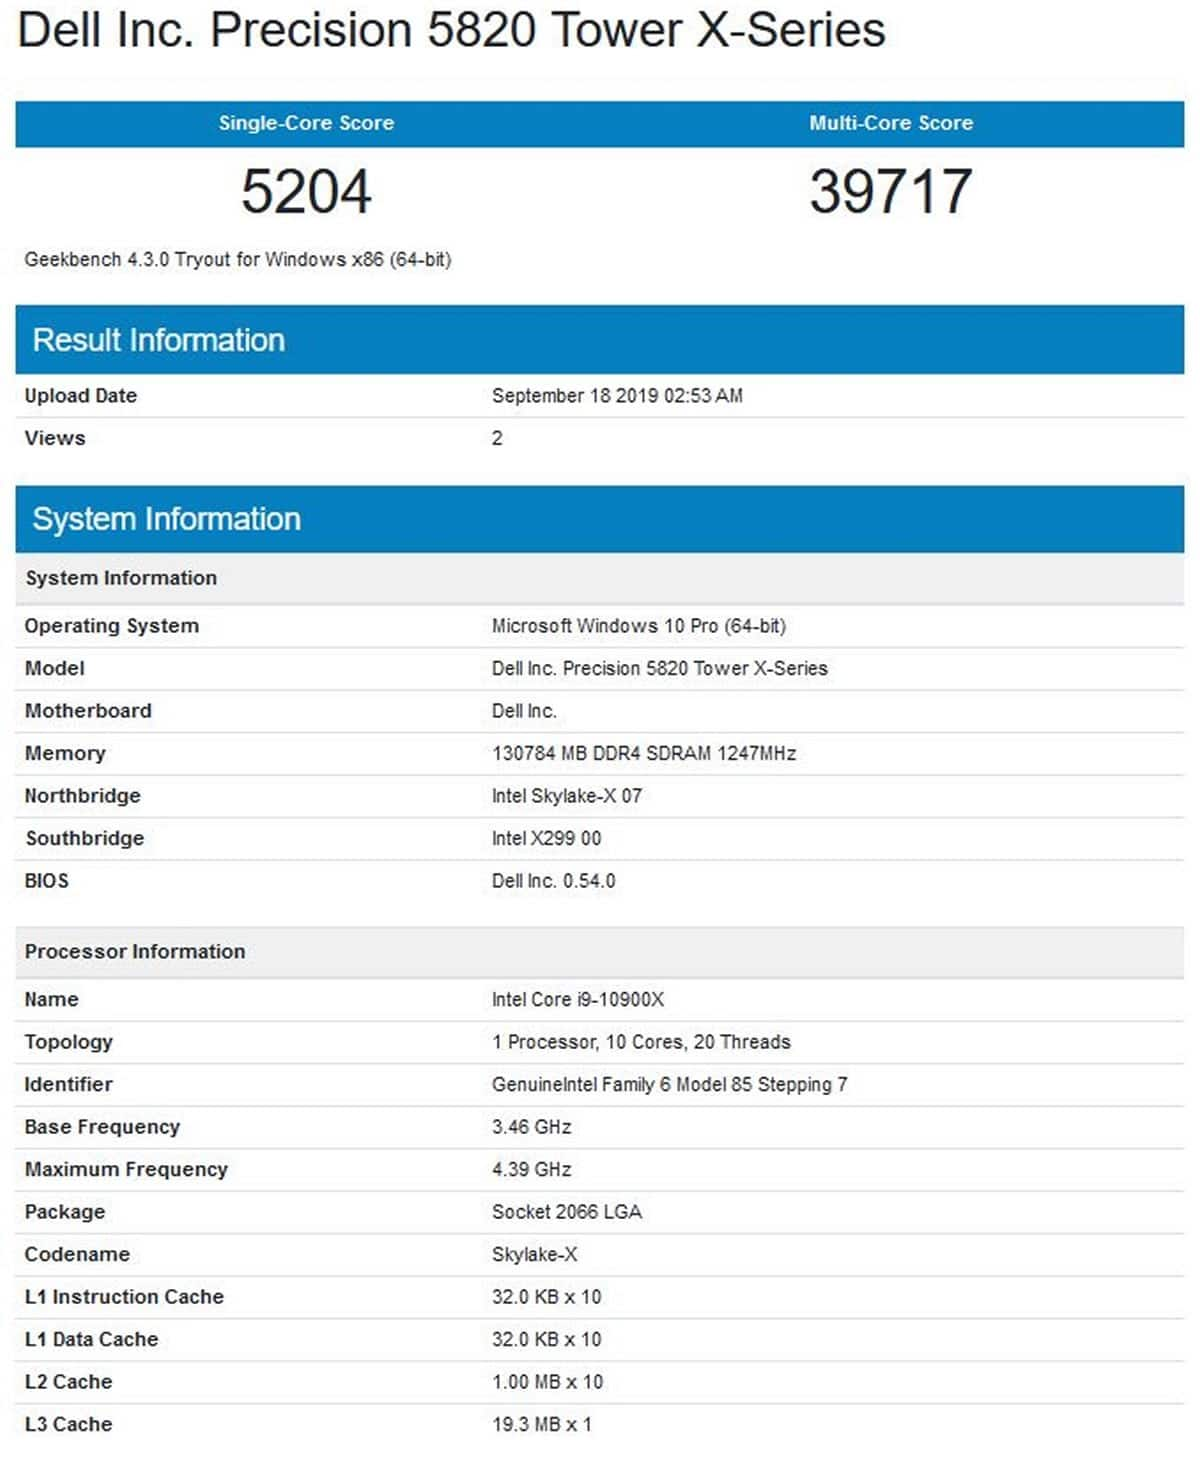 Benchmark processeur Intel Core i9-10900X Geekbench